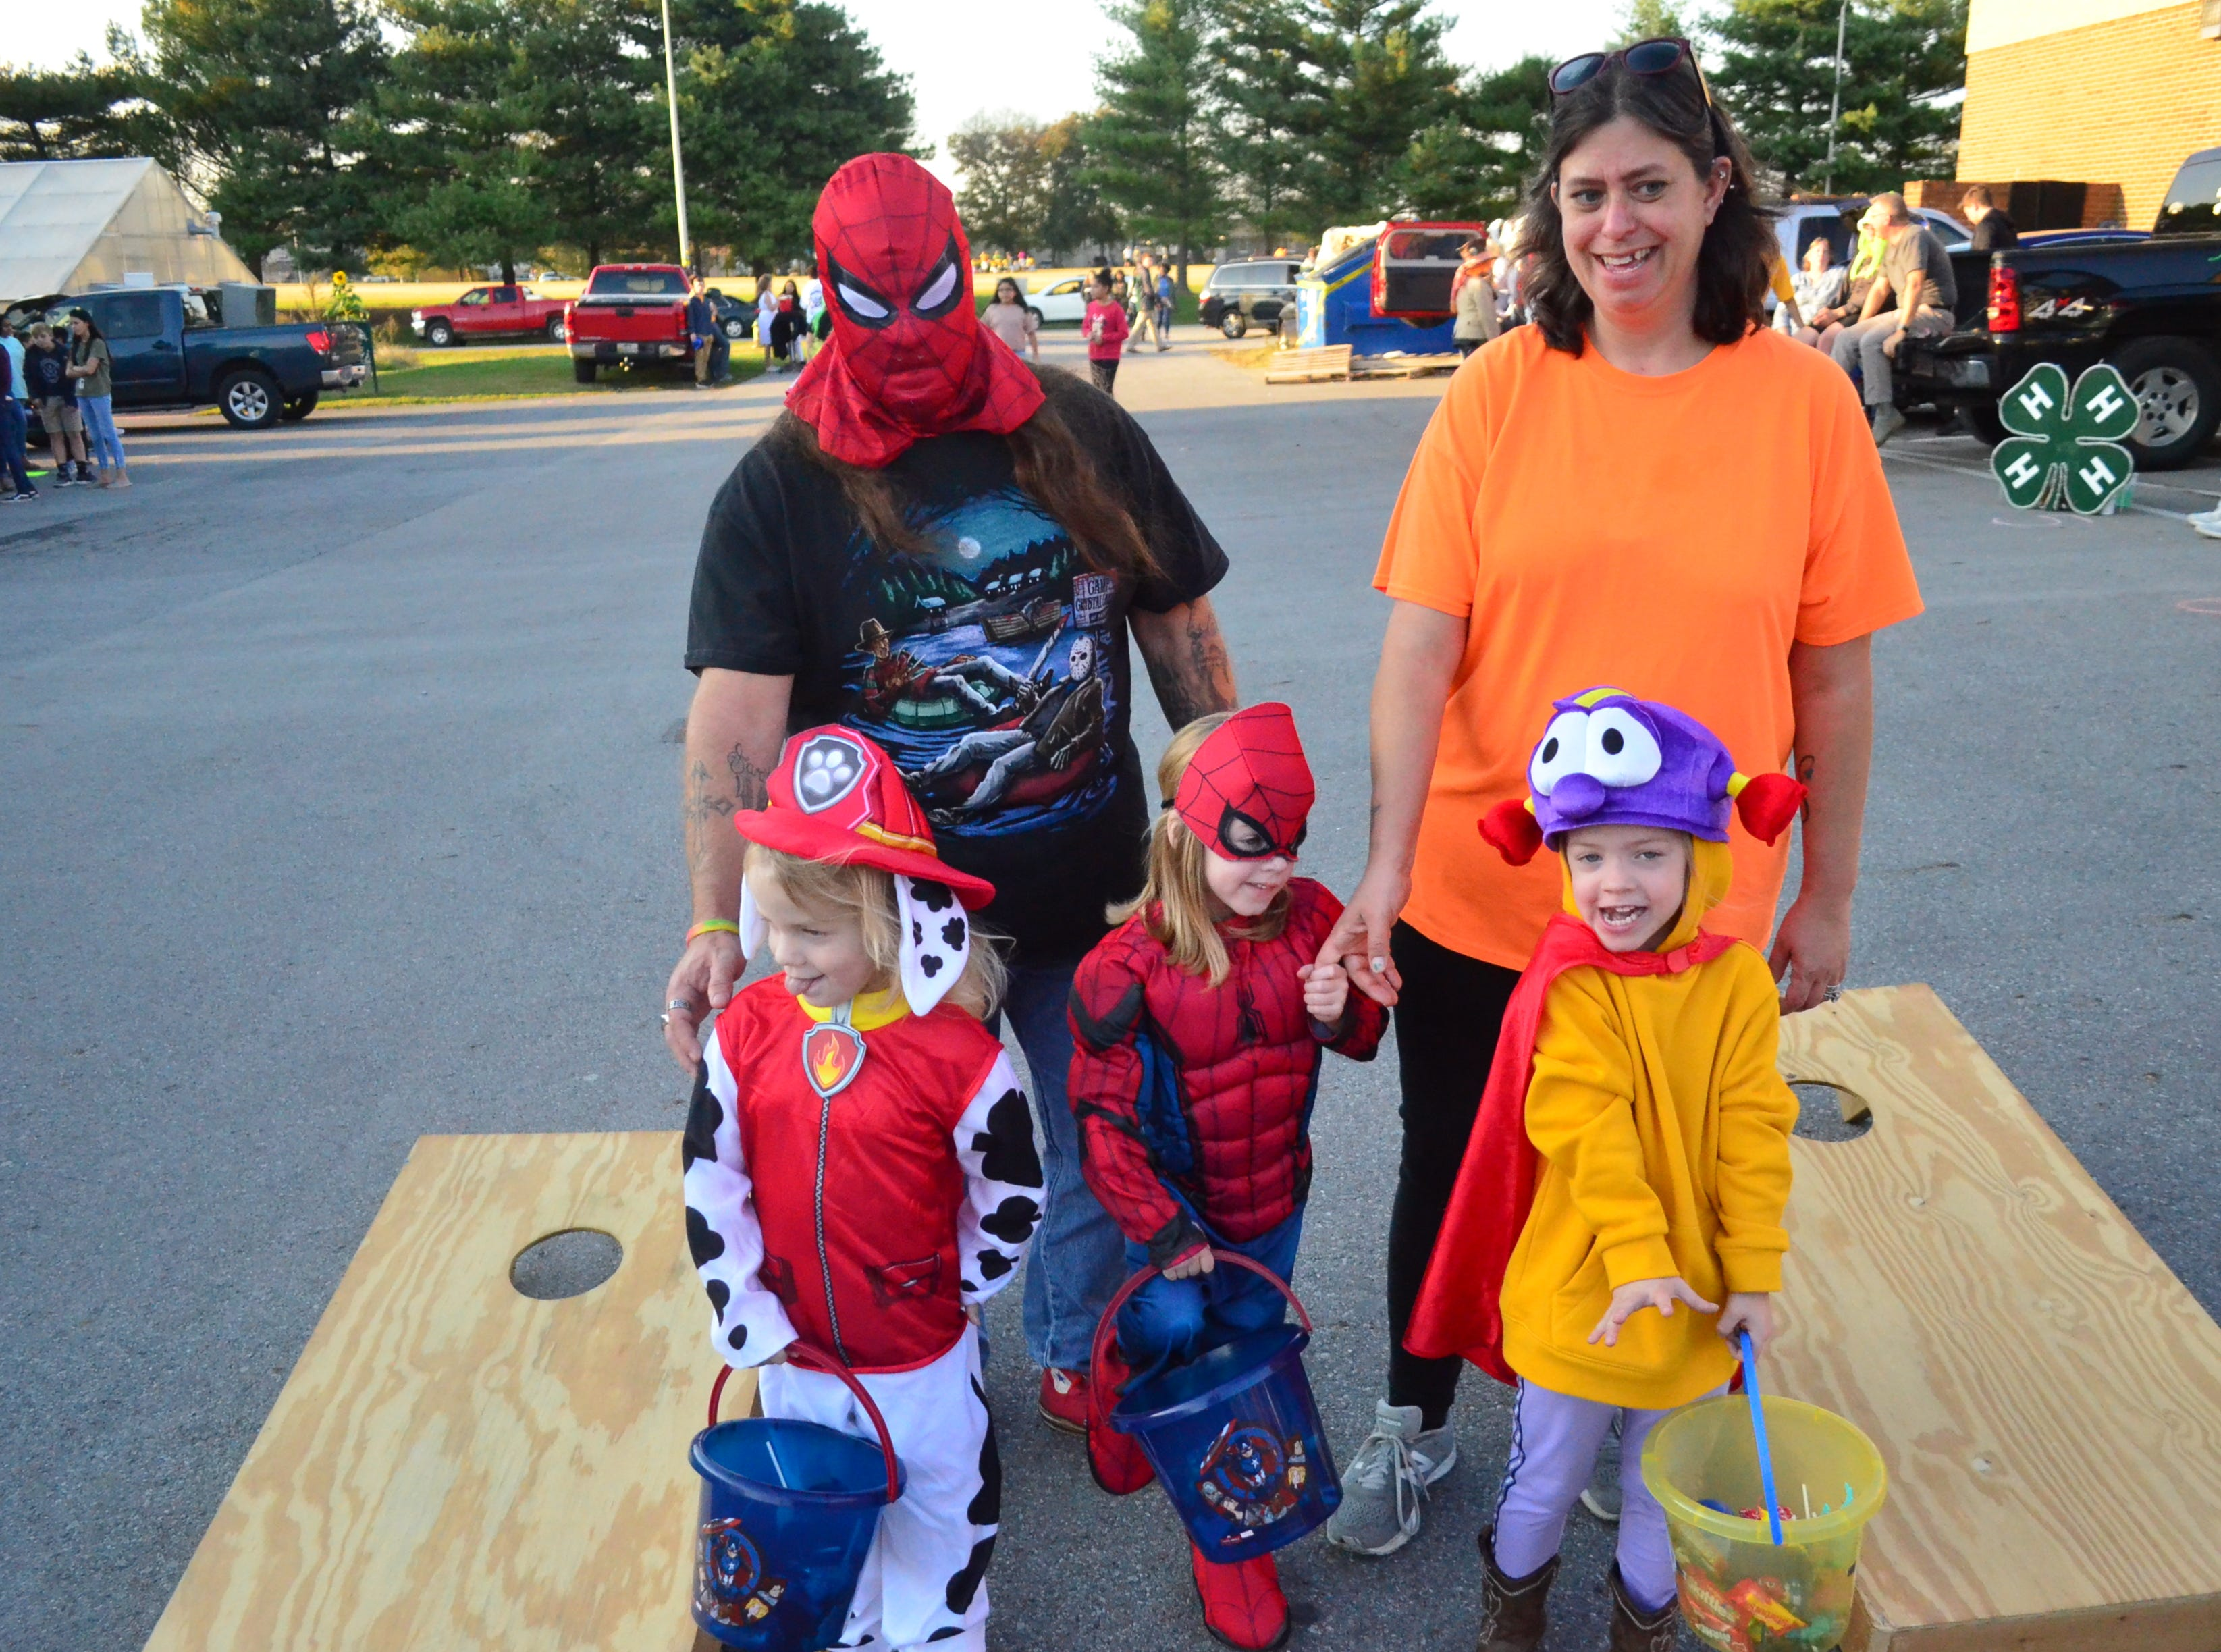 A trunk-or-treating event for CDC student was held at Gallatin High School on Tuesday, Oct. 30, 2018.